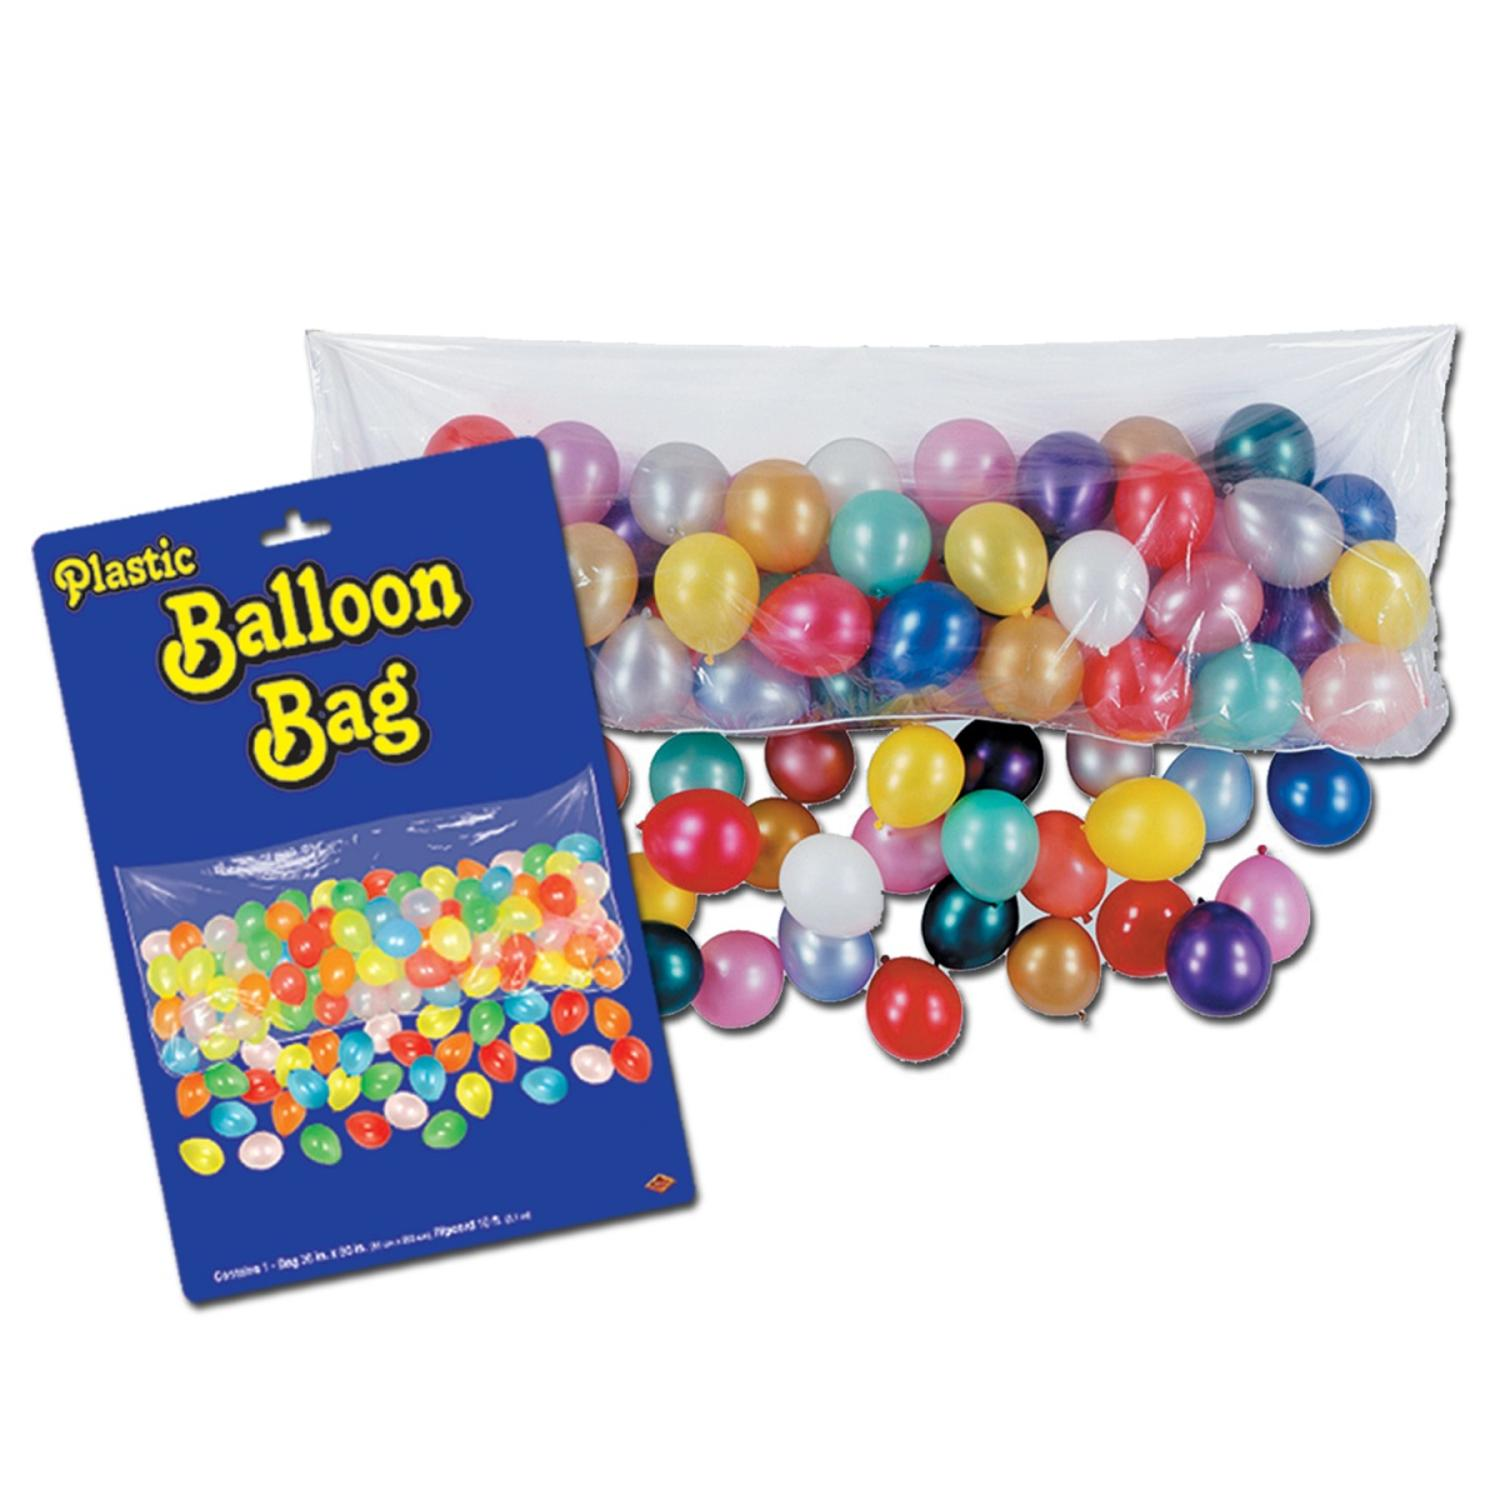 Club Pack of 12 Clear Plastic Balloon Bags w/100 No 6 Balloons 80""